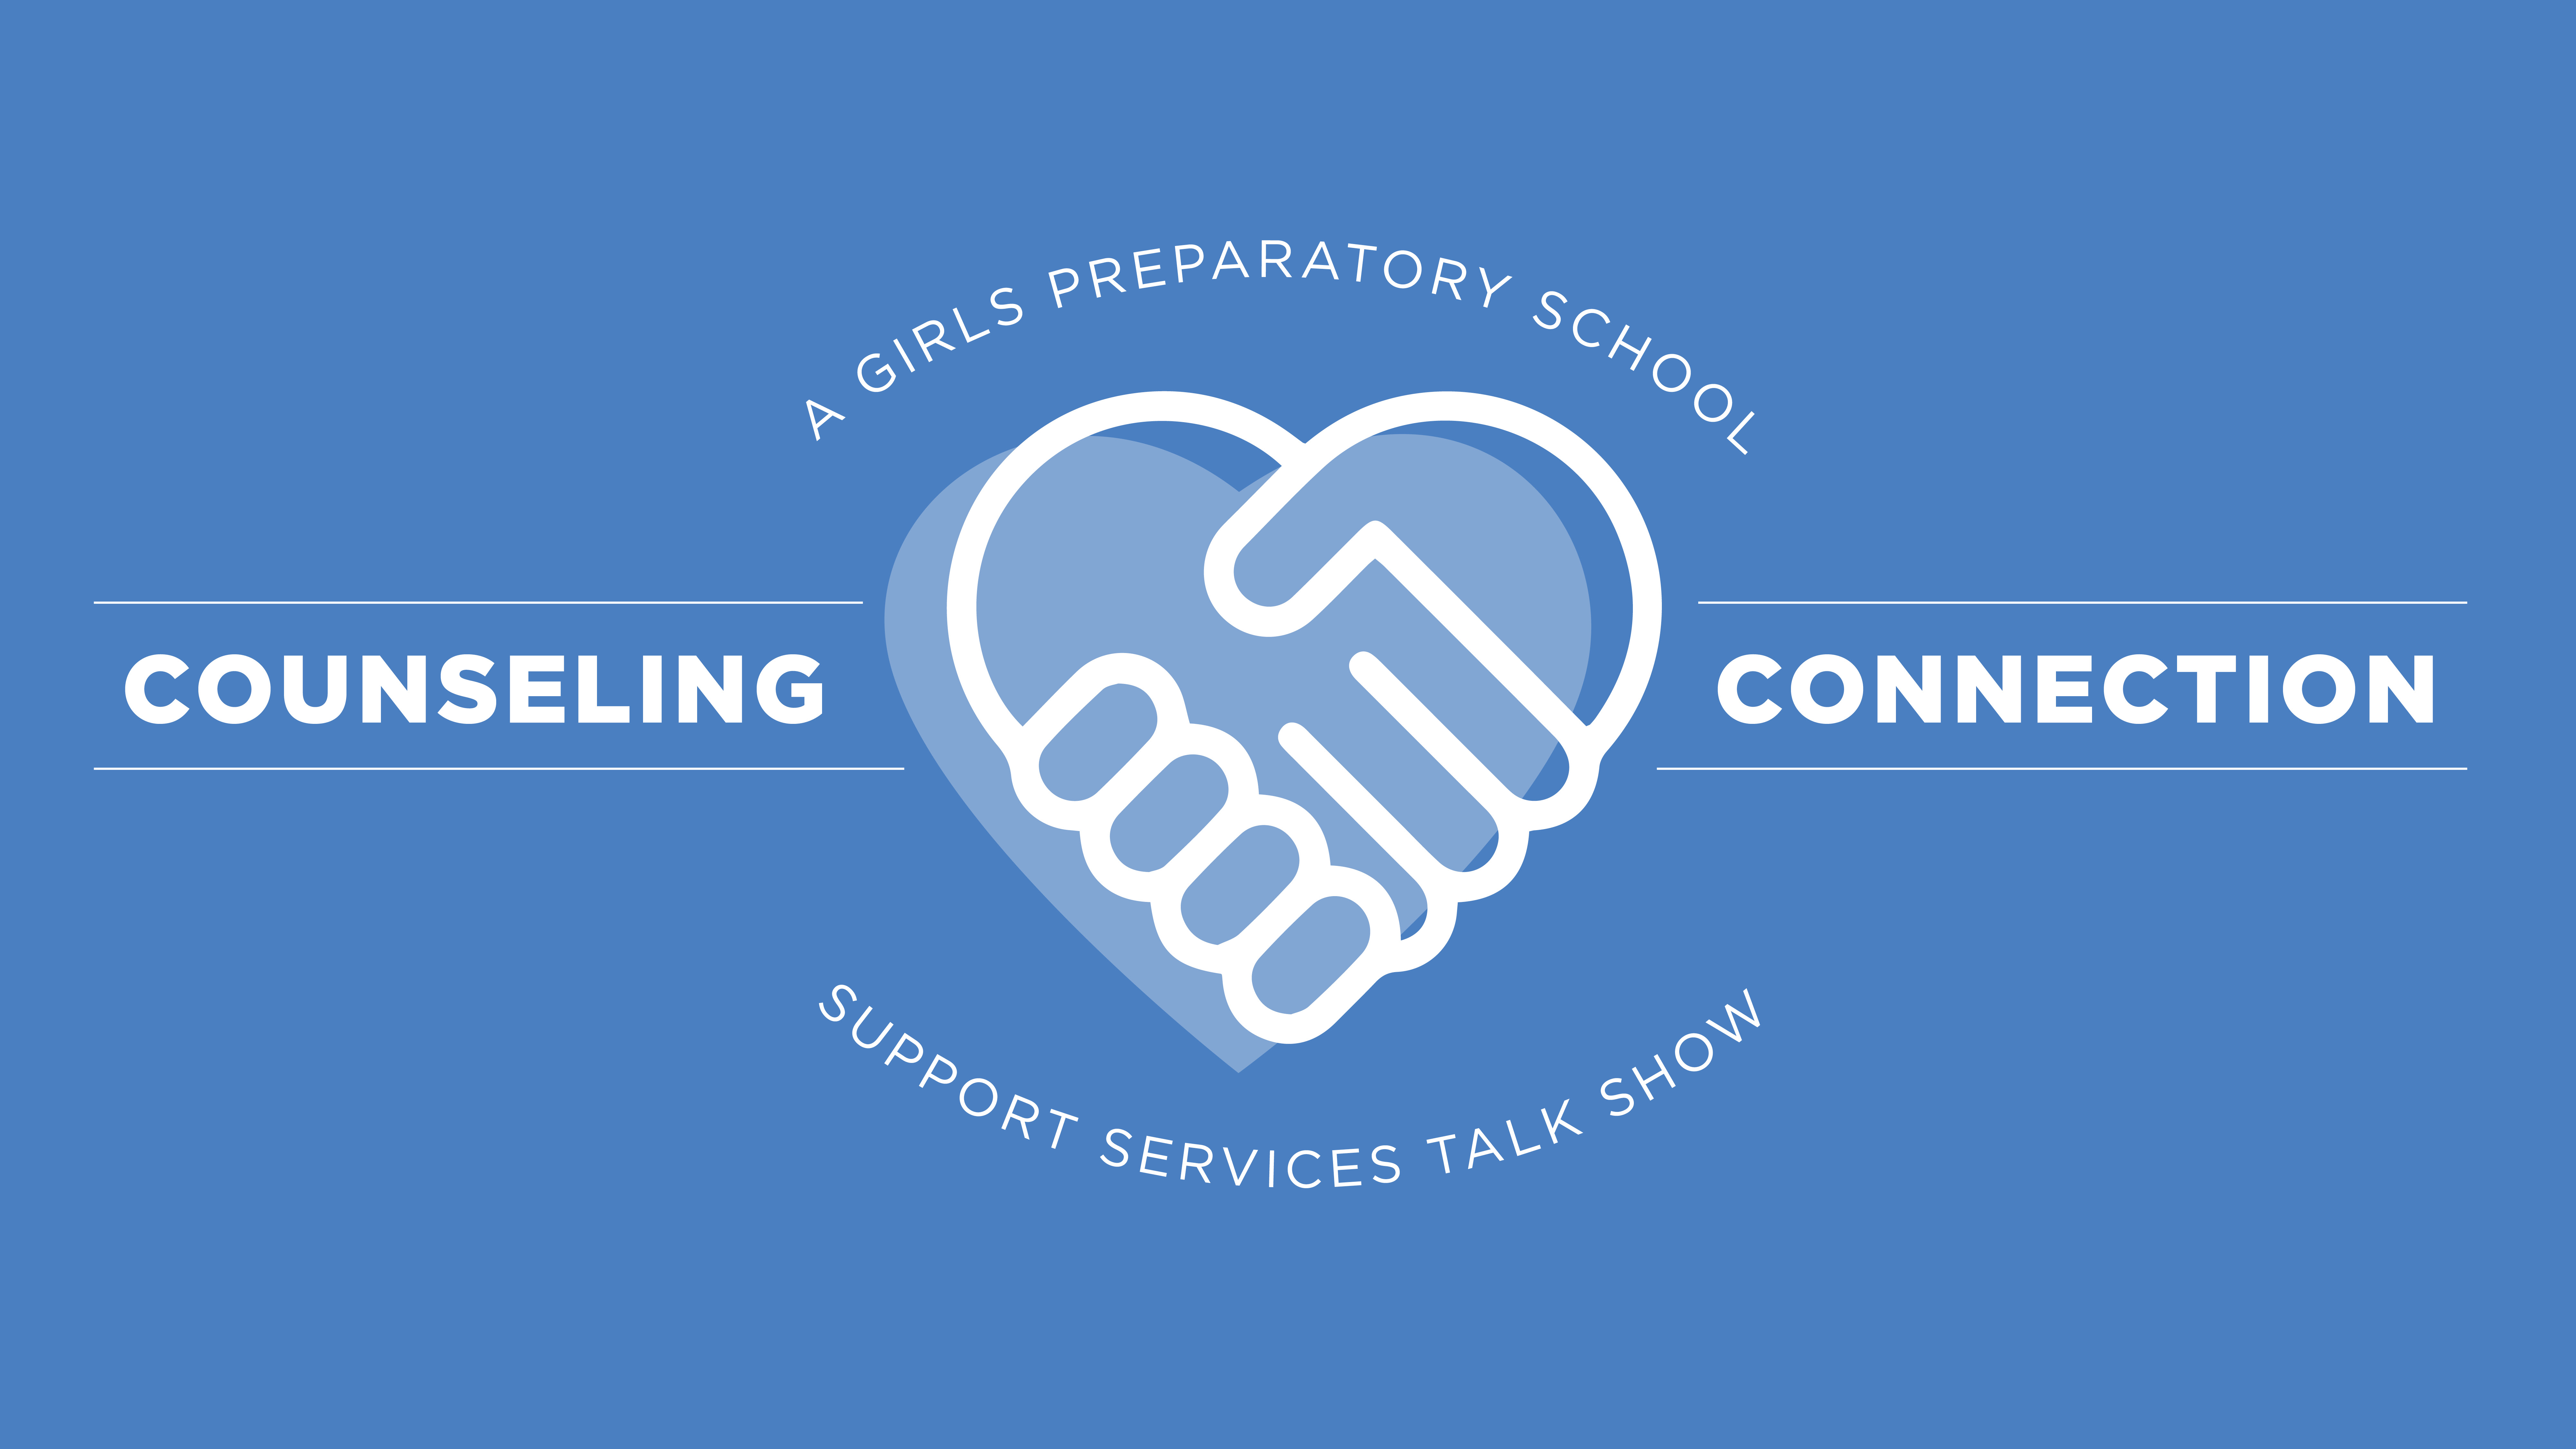 Get to Know GPS Counselors Through Counseling Connection